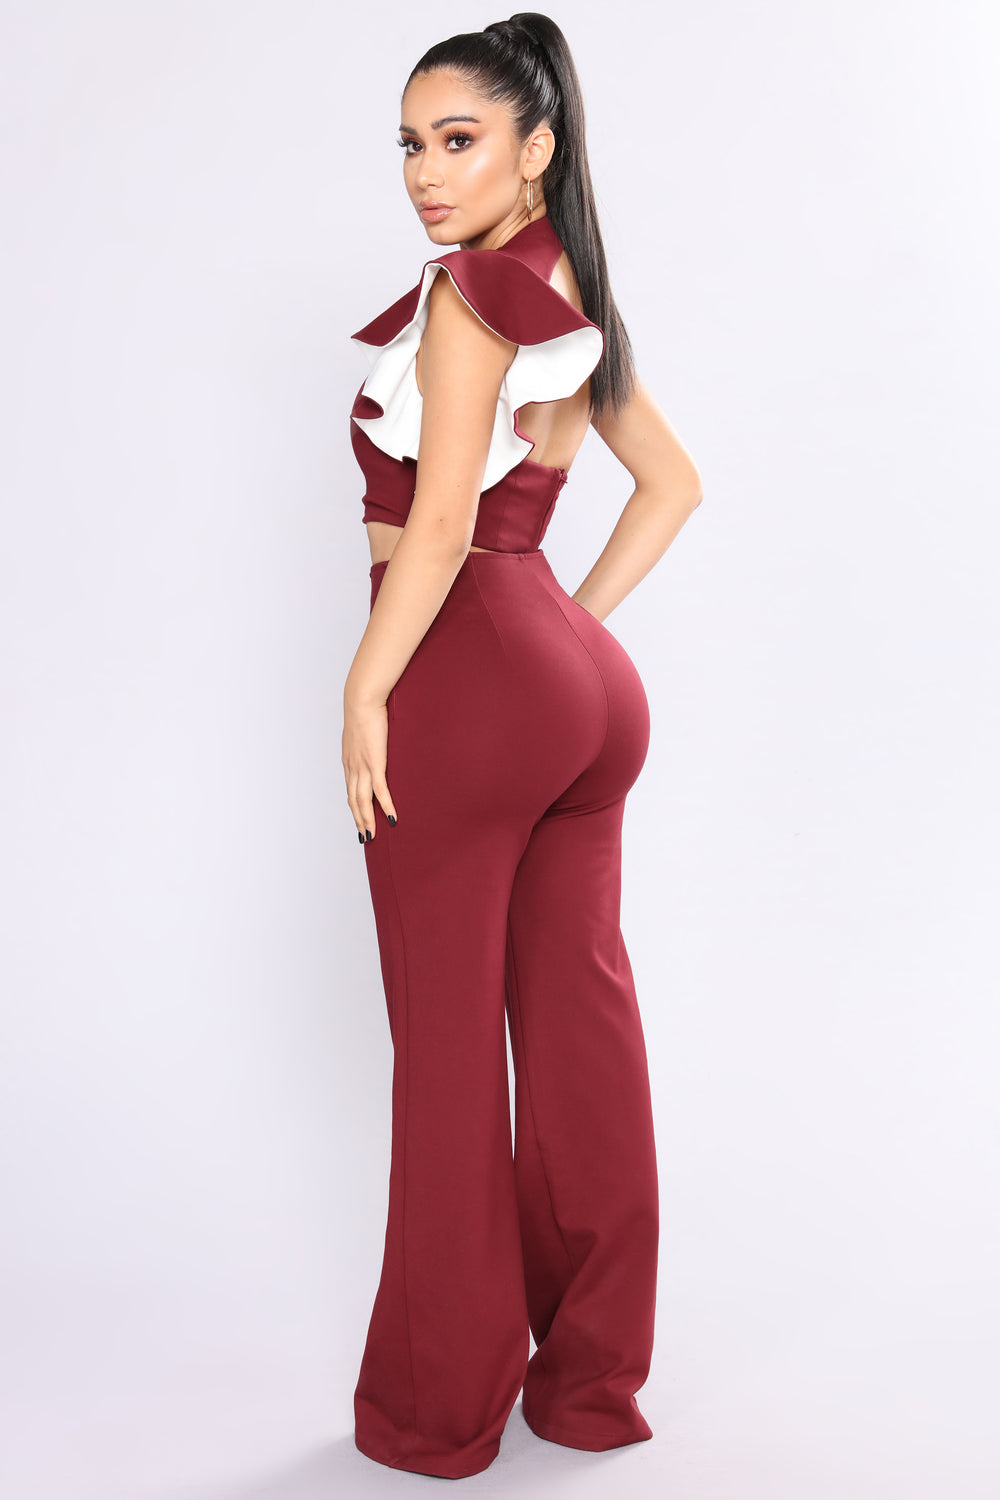 Frida Ruffle Pant Set - Burgundy/White